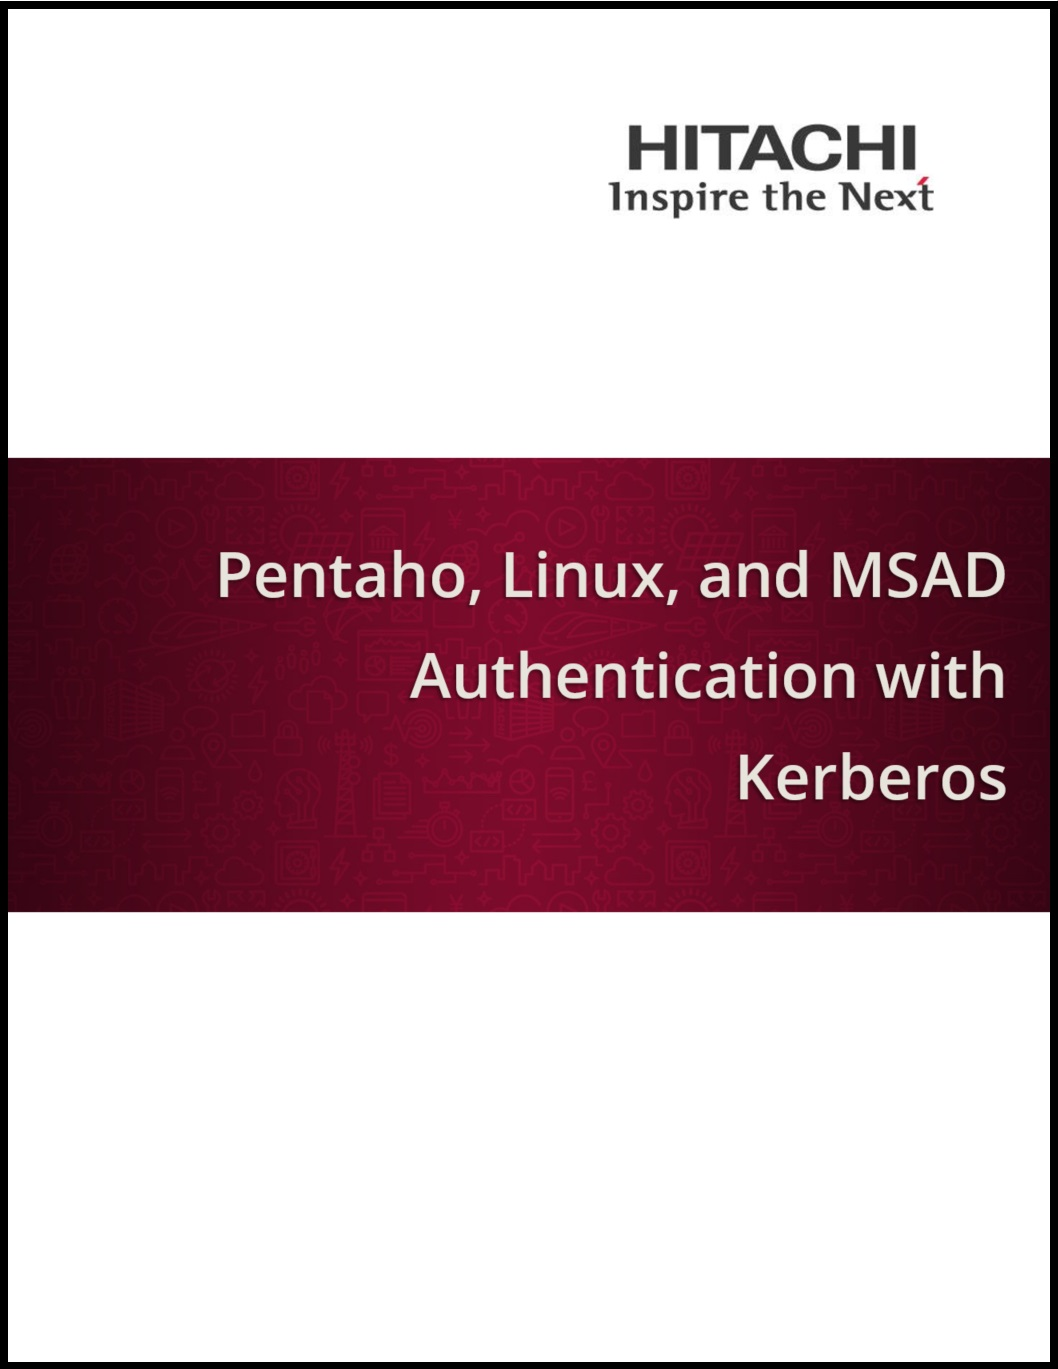 Pentaho_Linux_and_MSAD.jpg